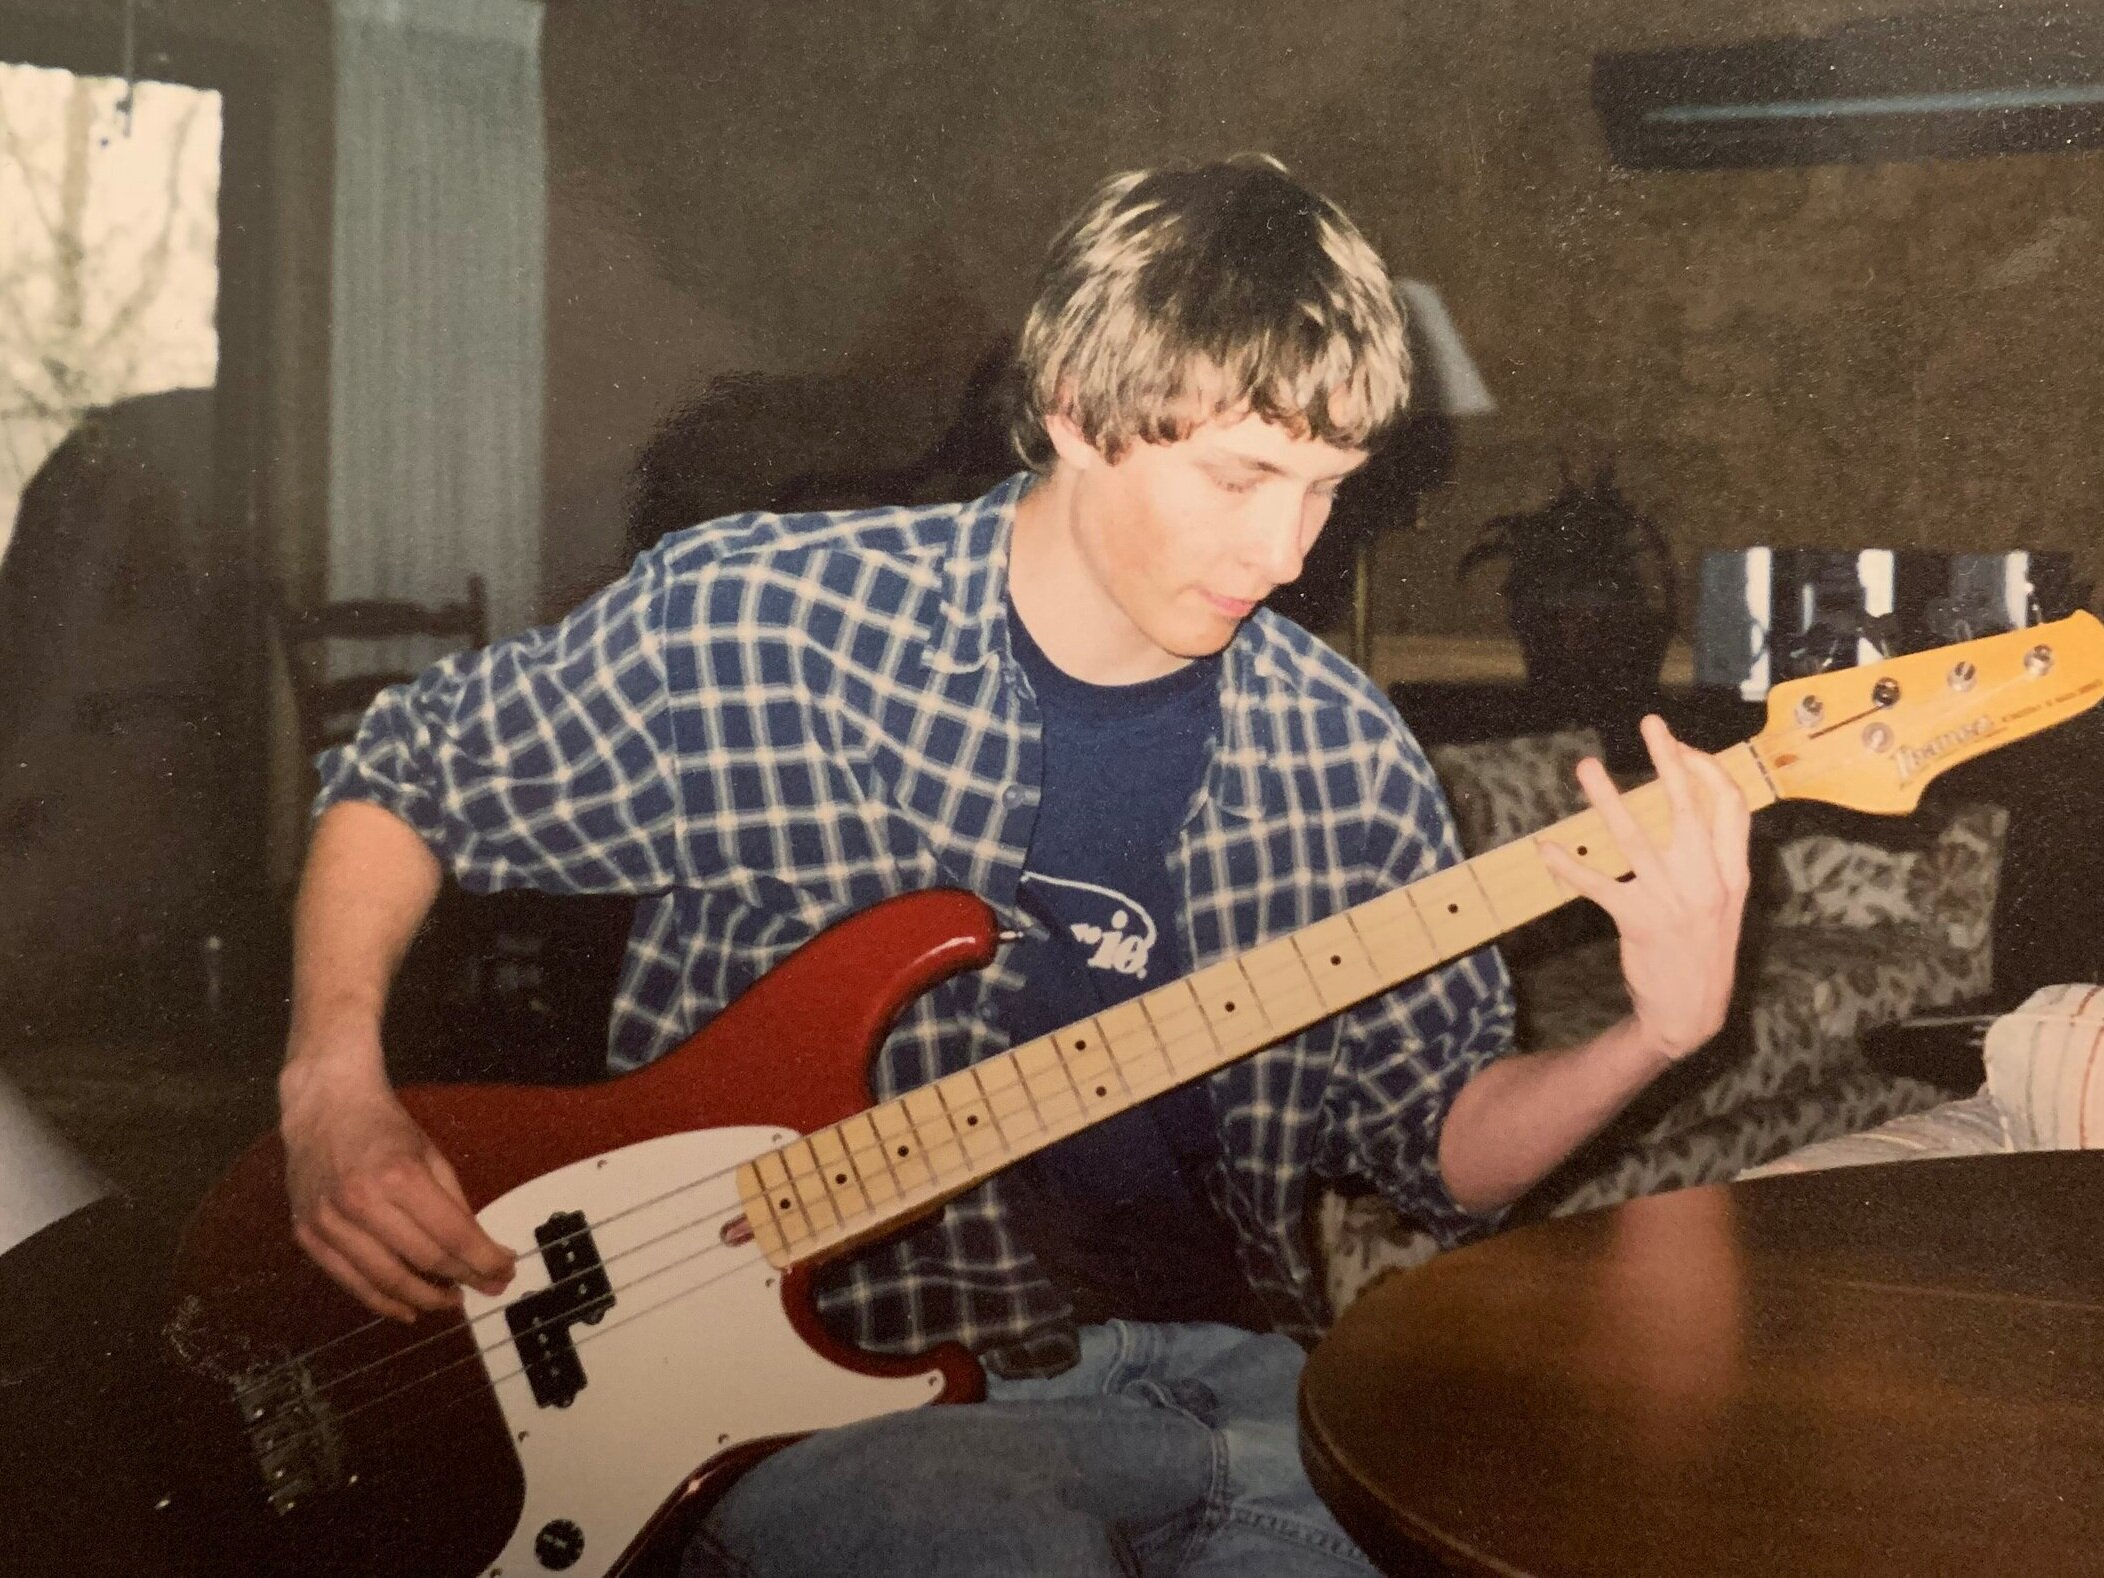 Playing bass at the grandparent's house in 2003. 16 years ago!